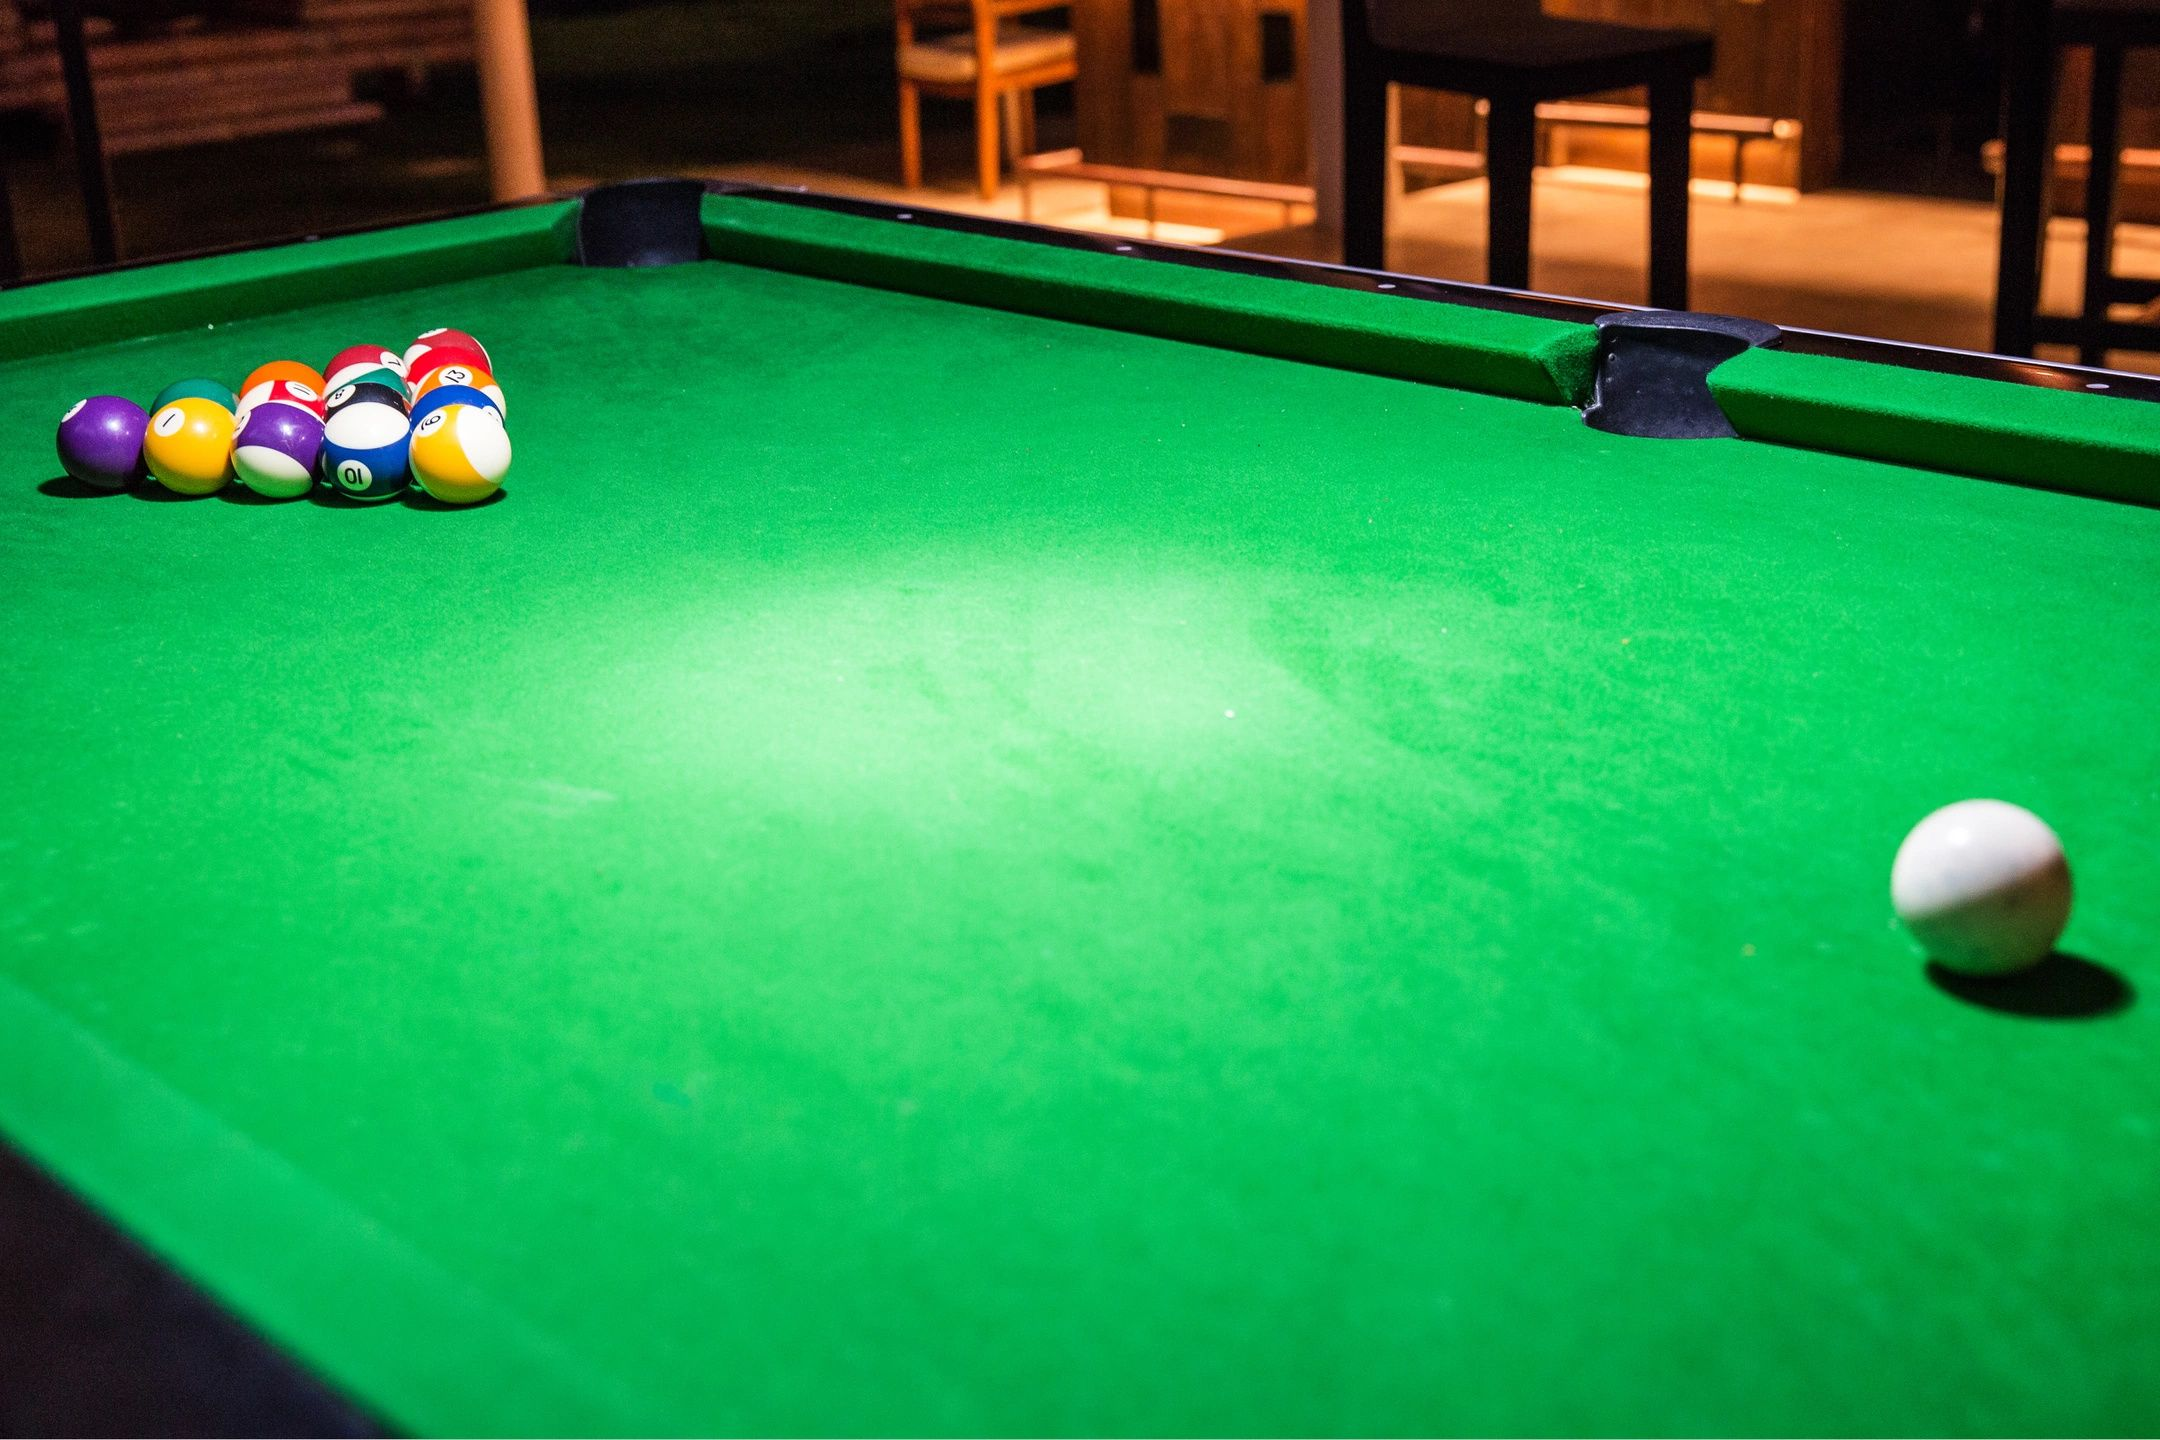 Who is the typical pool table buyer?